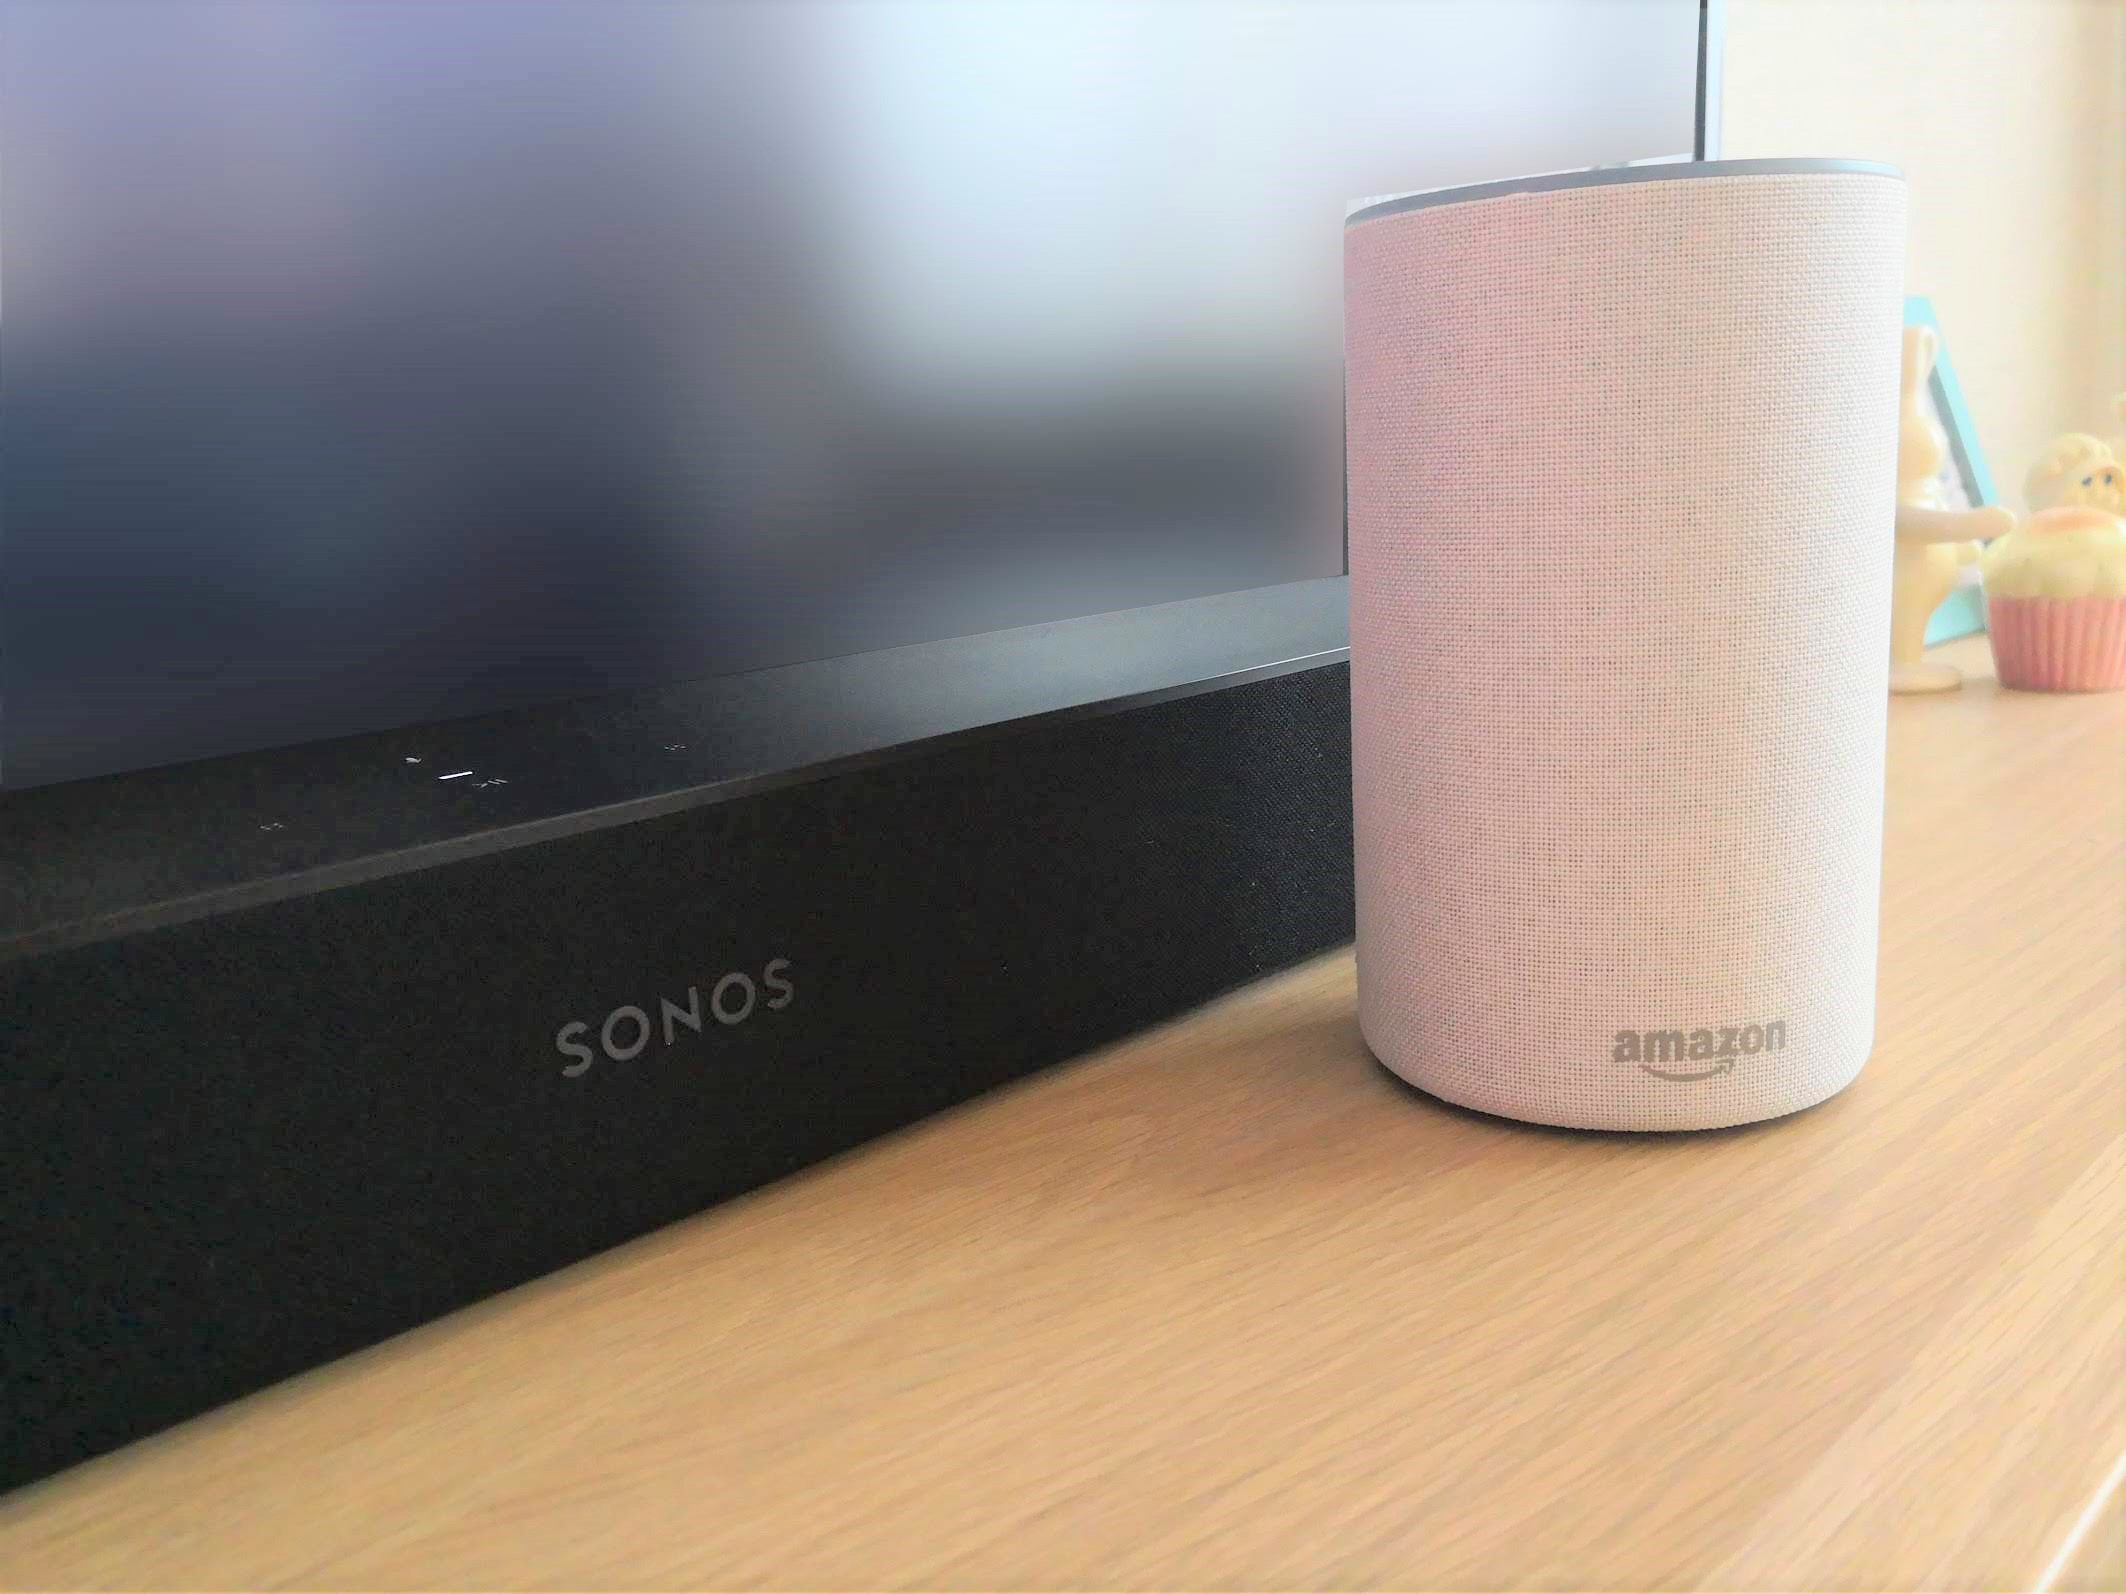 SONOS BeamとAmazon echo